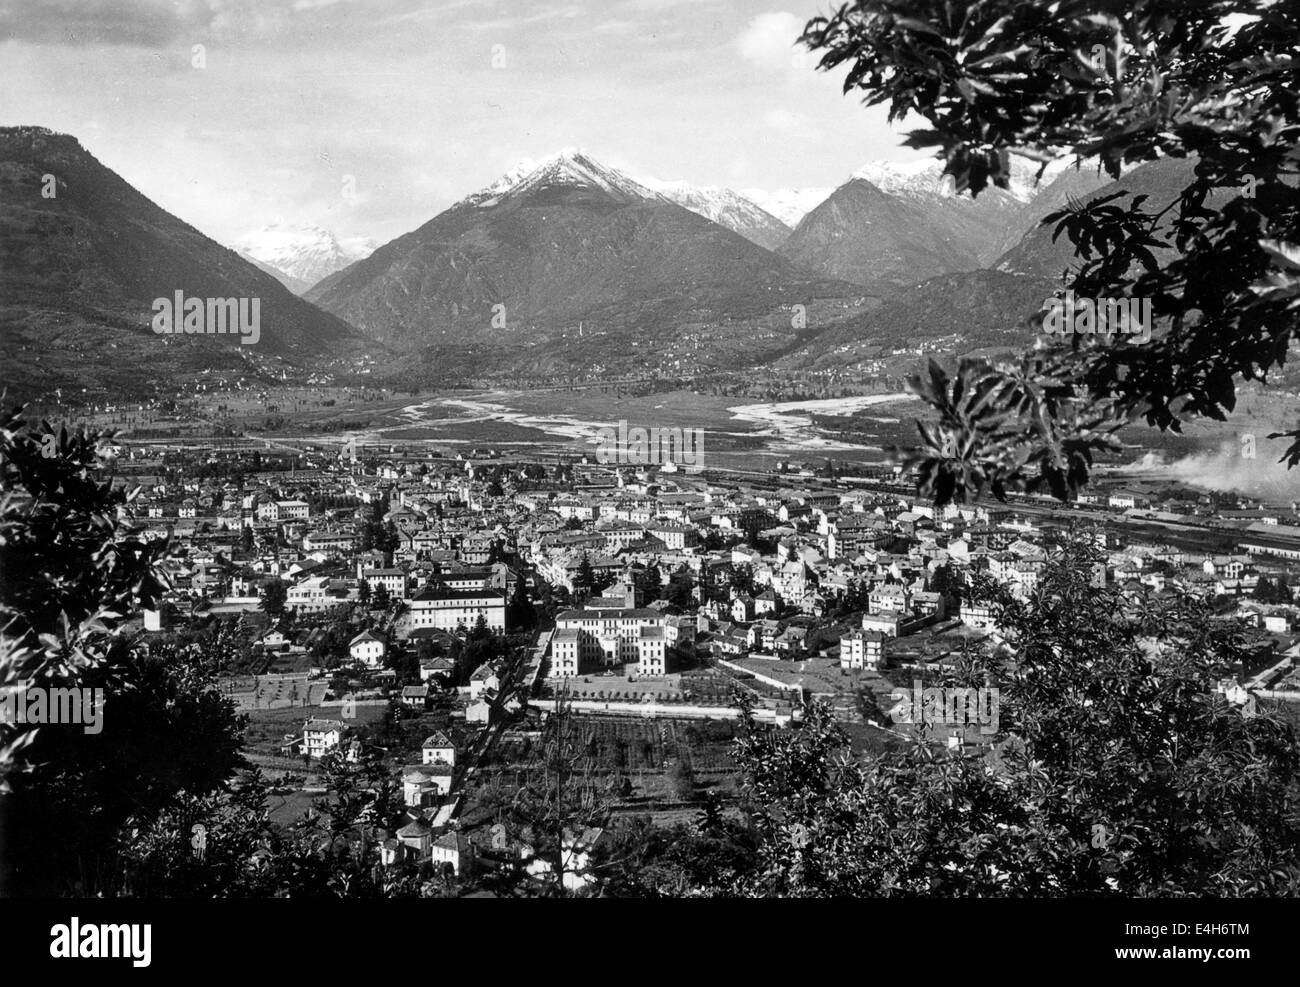 Domodossola in northern Italy 1940 1940s - Stock Image